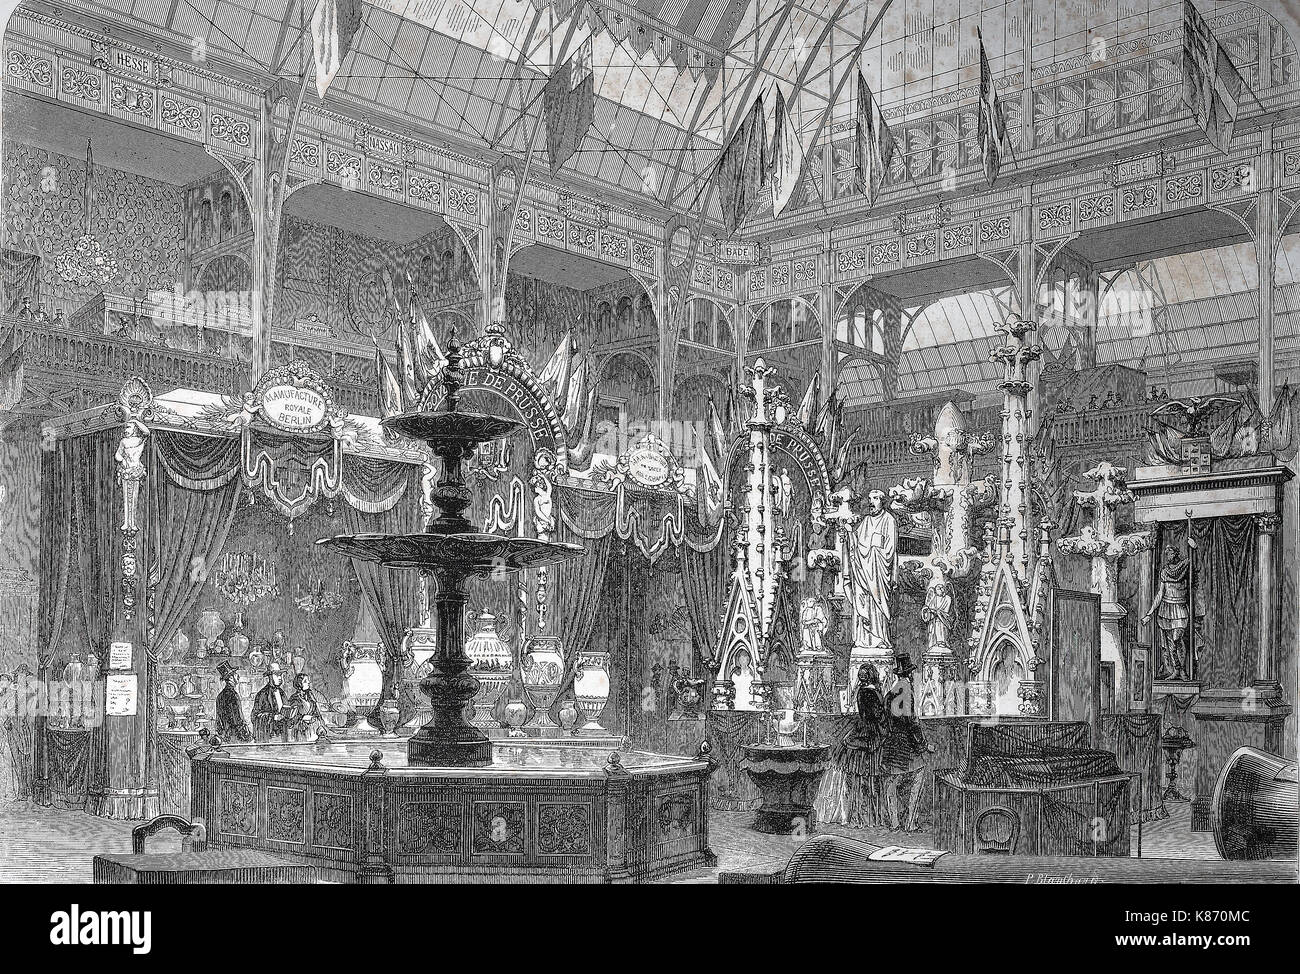 the international exposition 1867, Paris, France, the prussian exhibition hall, Digital improved reproduction of - Stock Image